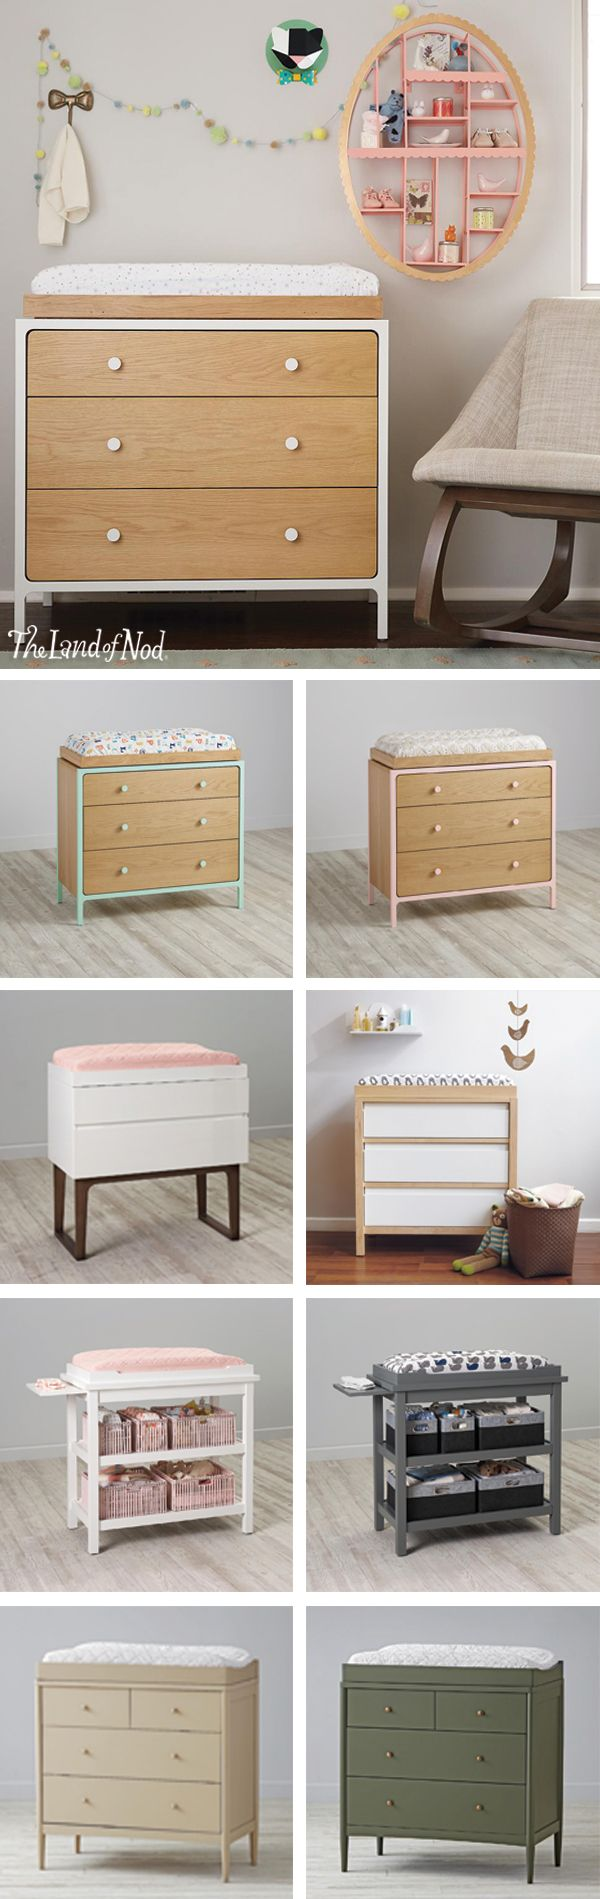 Whatu0027s The Must Have Kids Furniture For Every Nursery? The Answer Is A  Changing